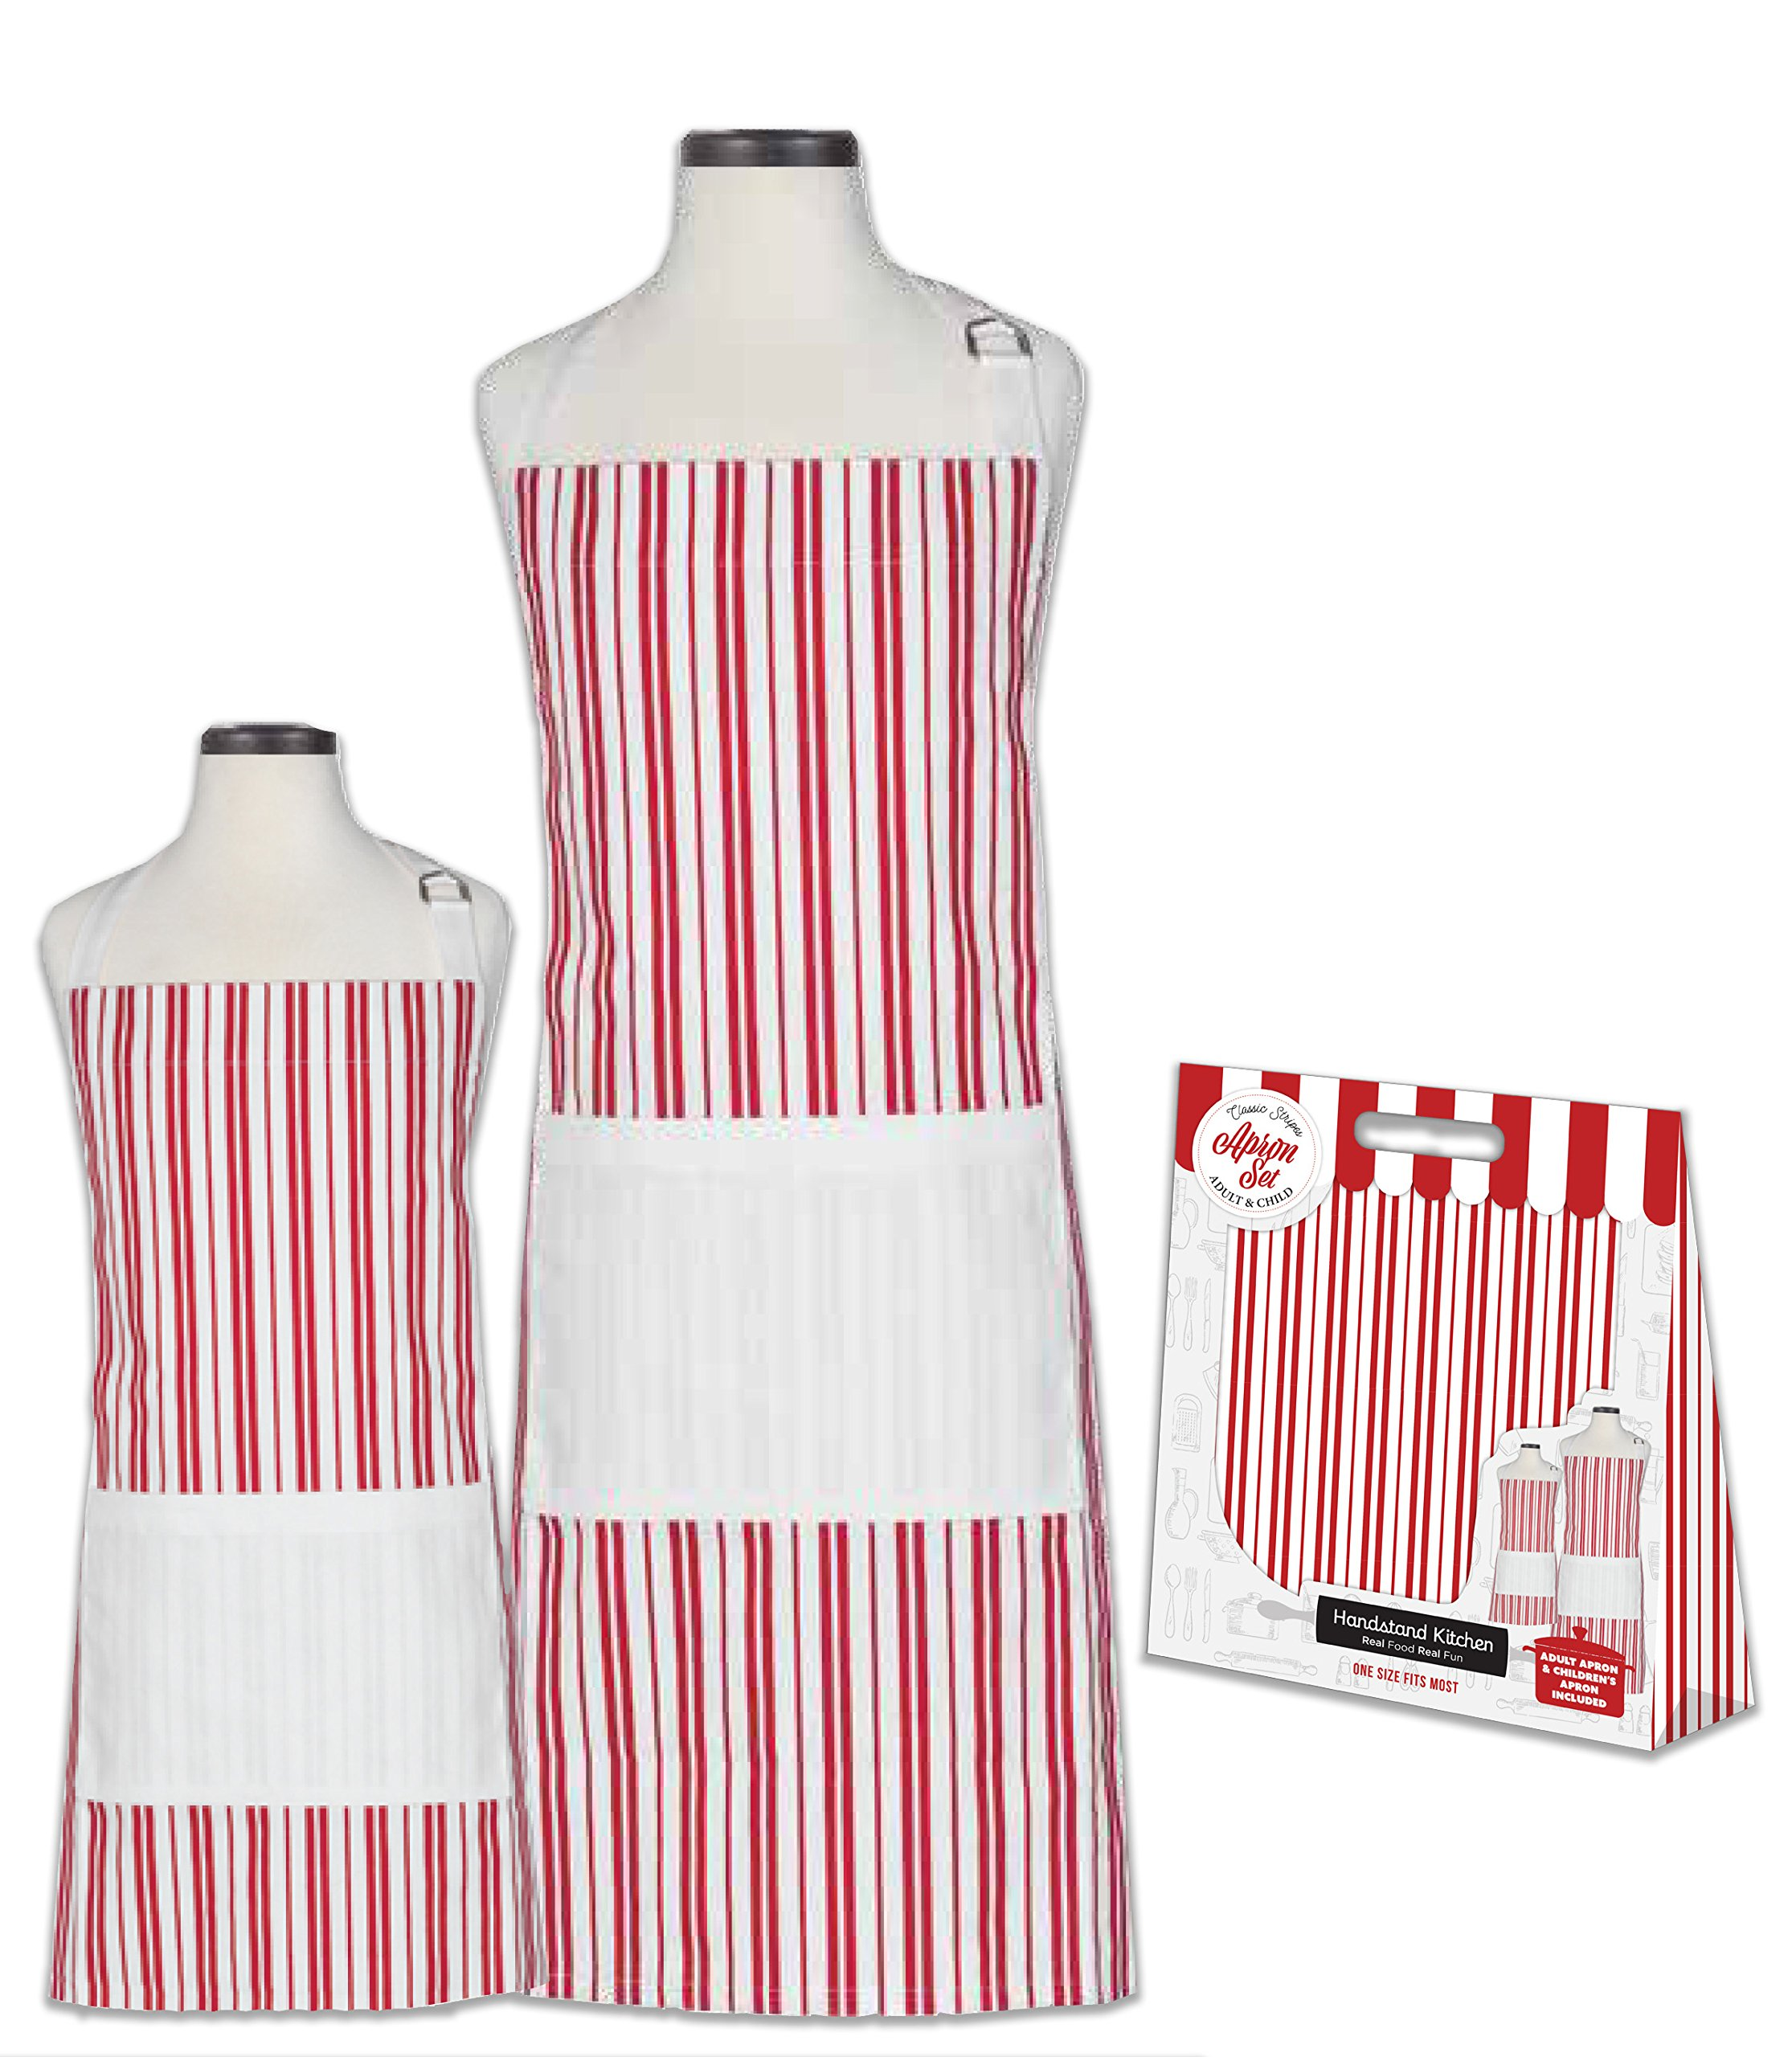 Handstand Kitchen Adult and Child Classic Red Stripe 100% Cotton Apron Gift Set